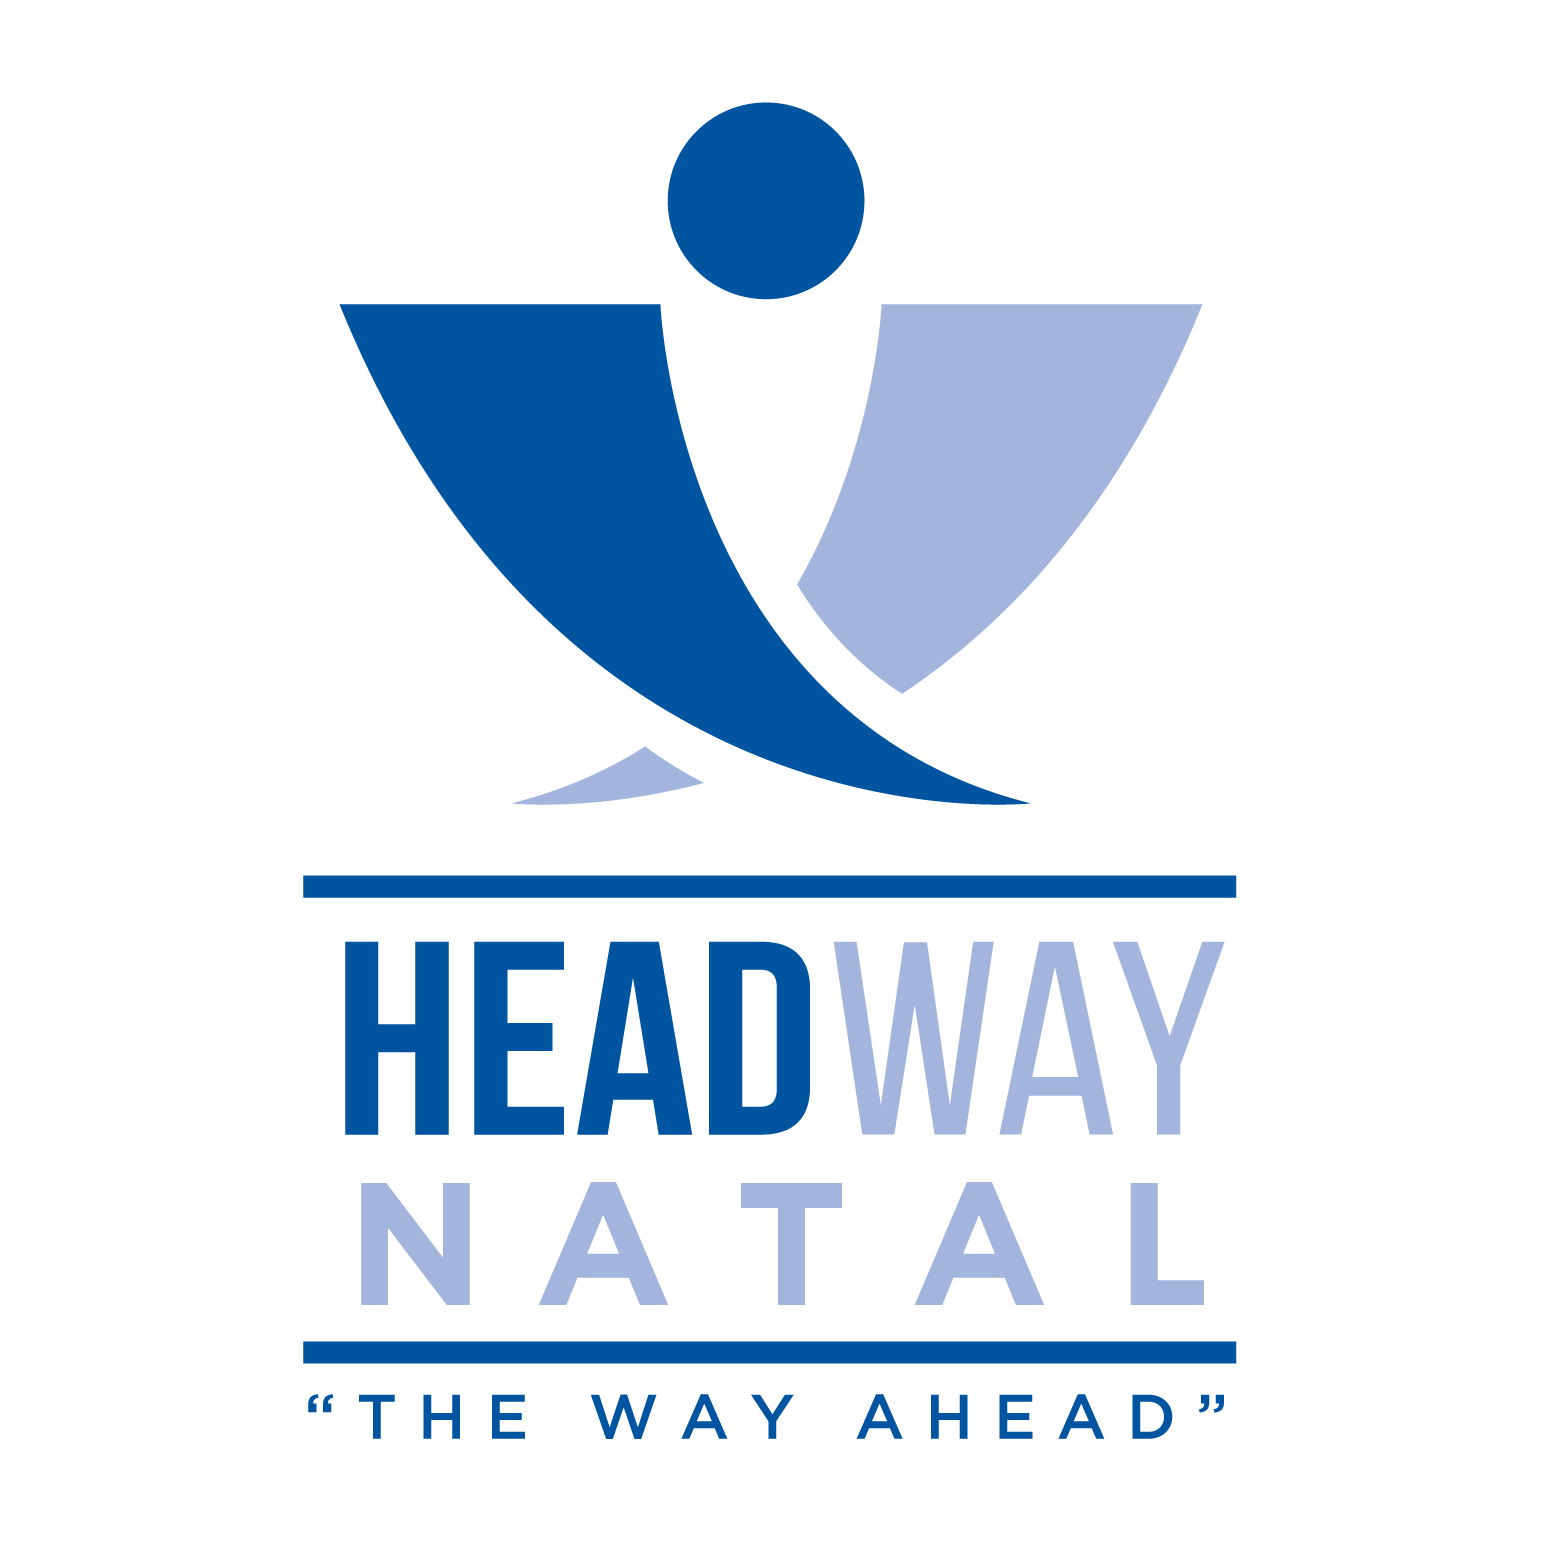 Headway Natal